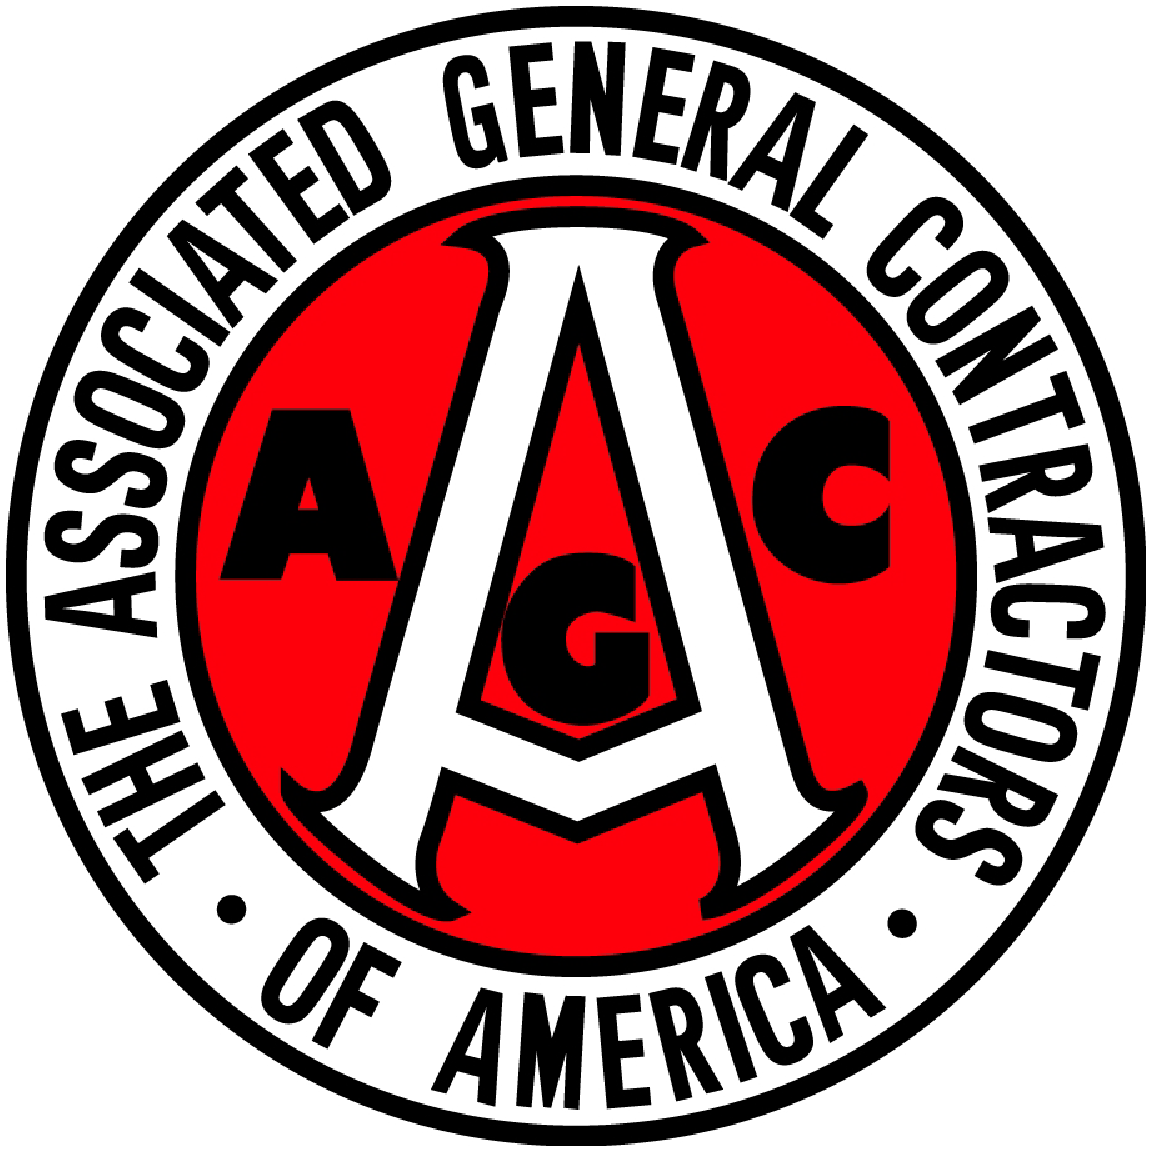 Associated General Contractors membership badge